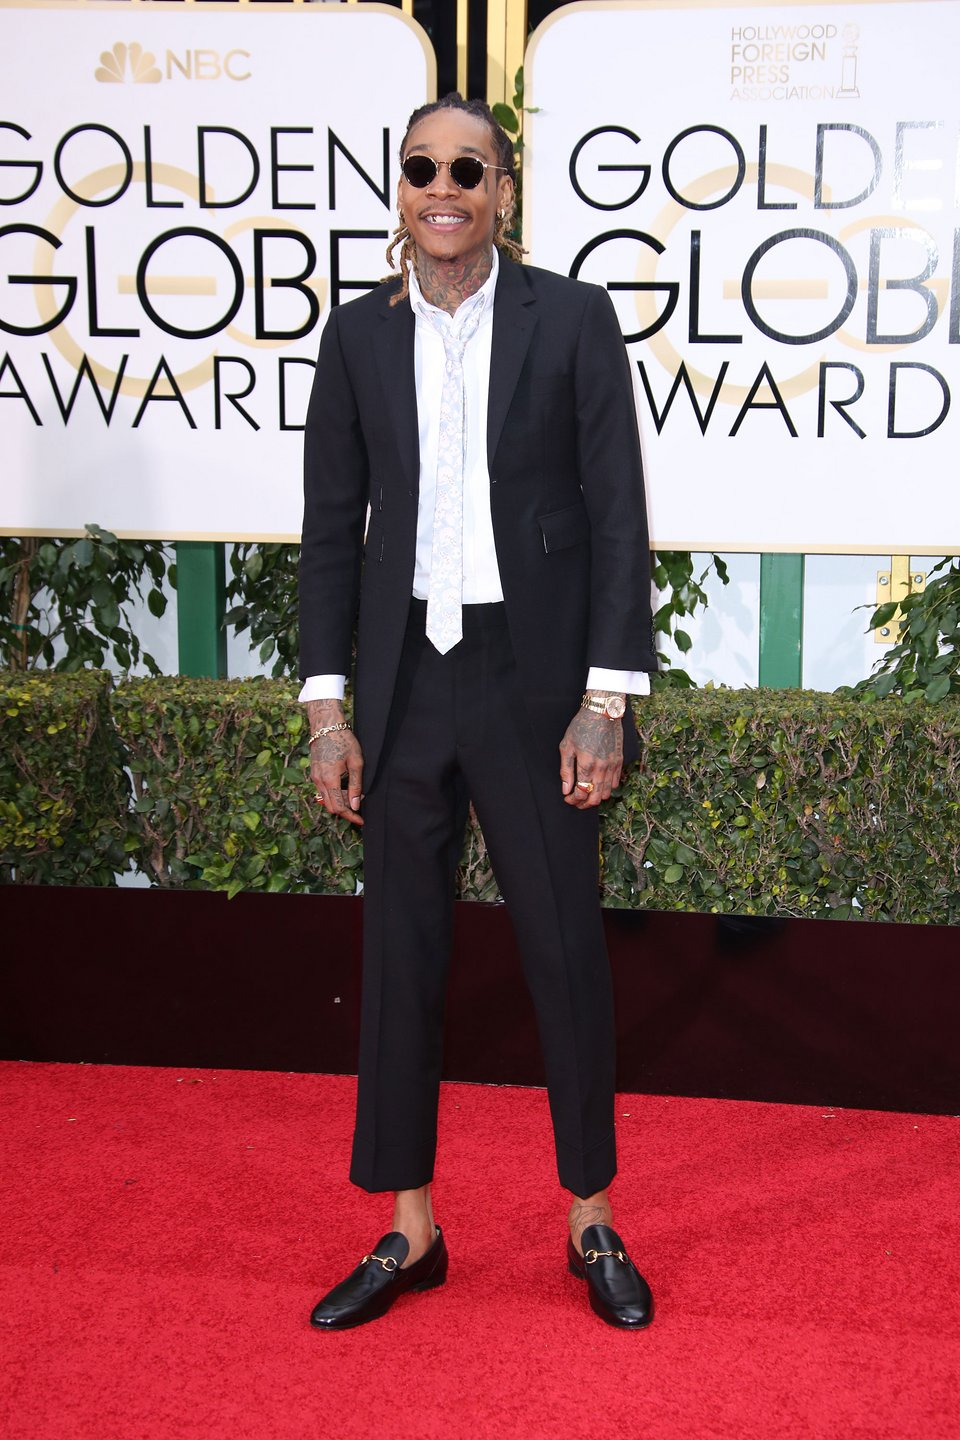 Wiz Khalifa at the 2016 Golden Globes Red Carpet (Vogue named him the best dressed man at the Globe) Image Courtesy of vogue.com